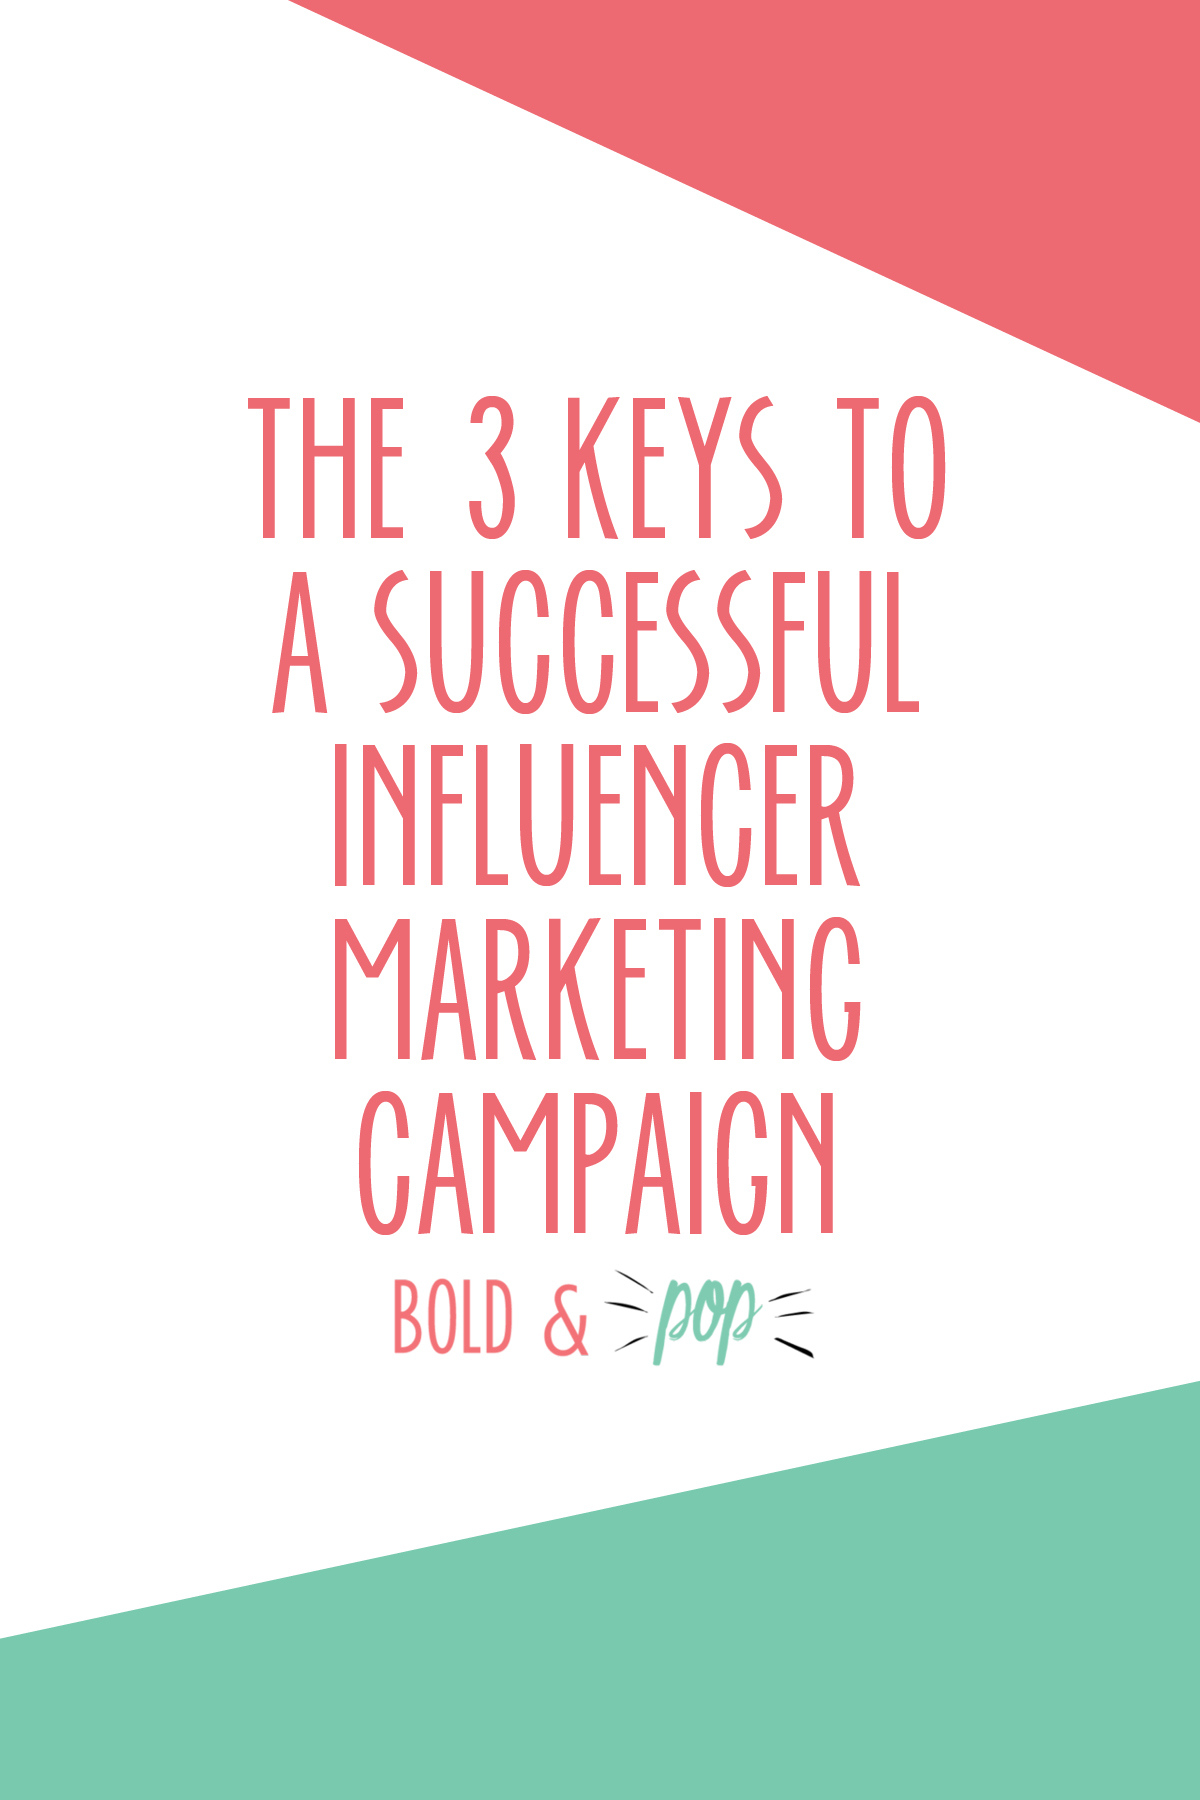 Bold & Pop : The 3 Keys to a Successful Influencer Marketing Campaign